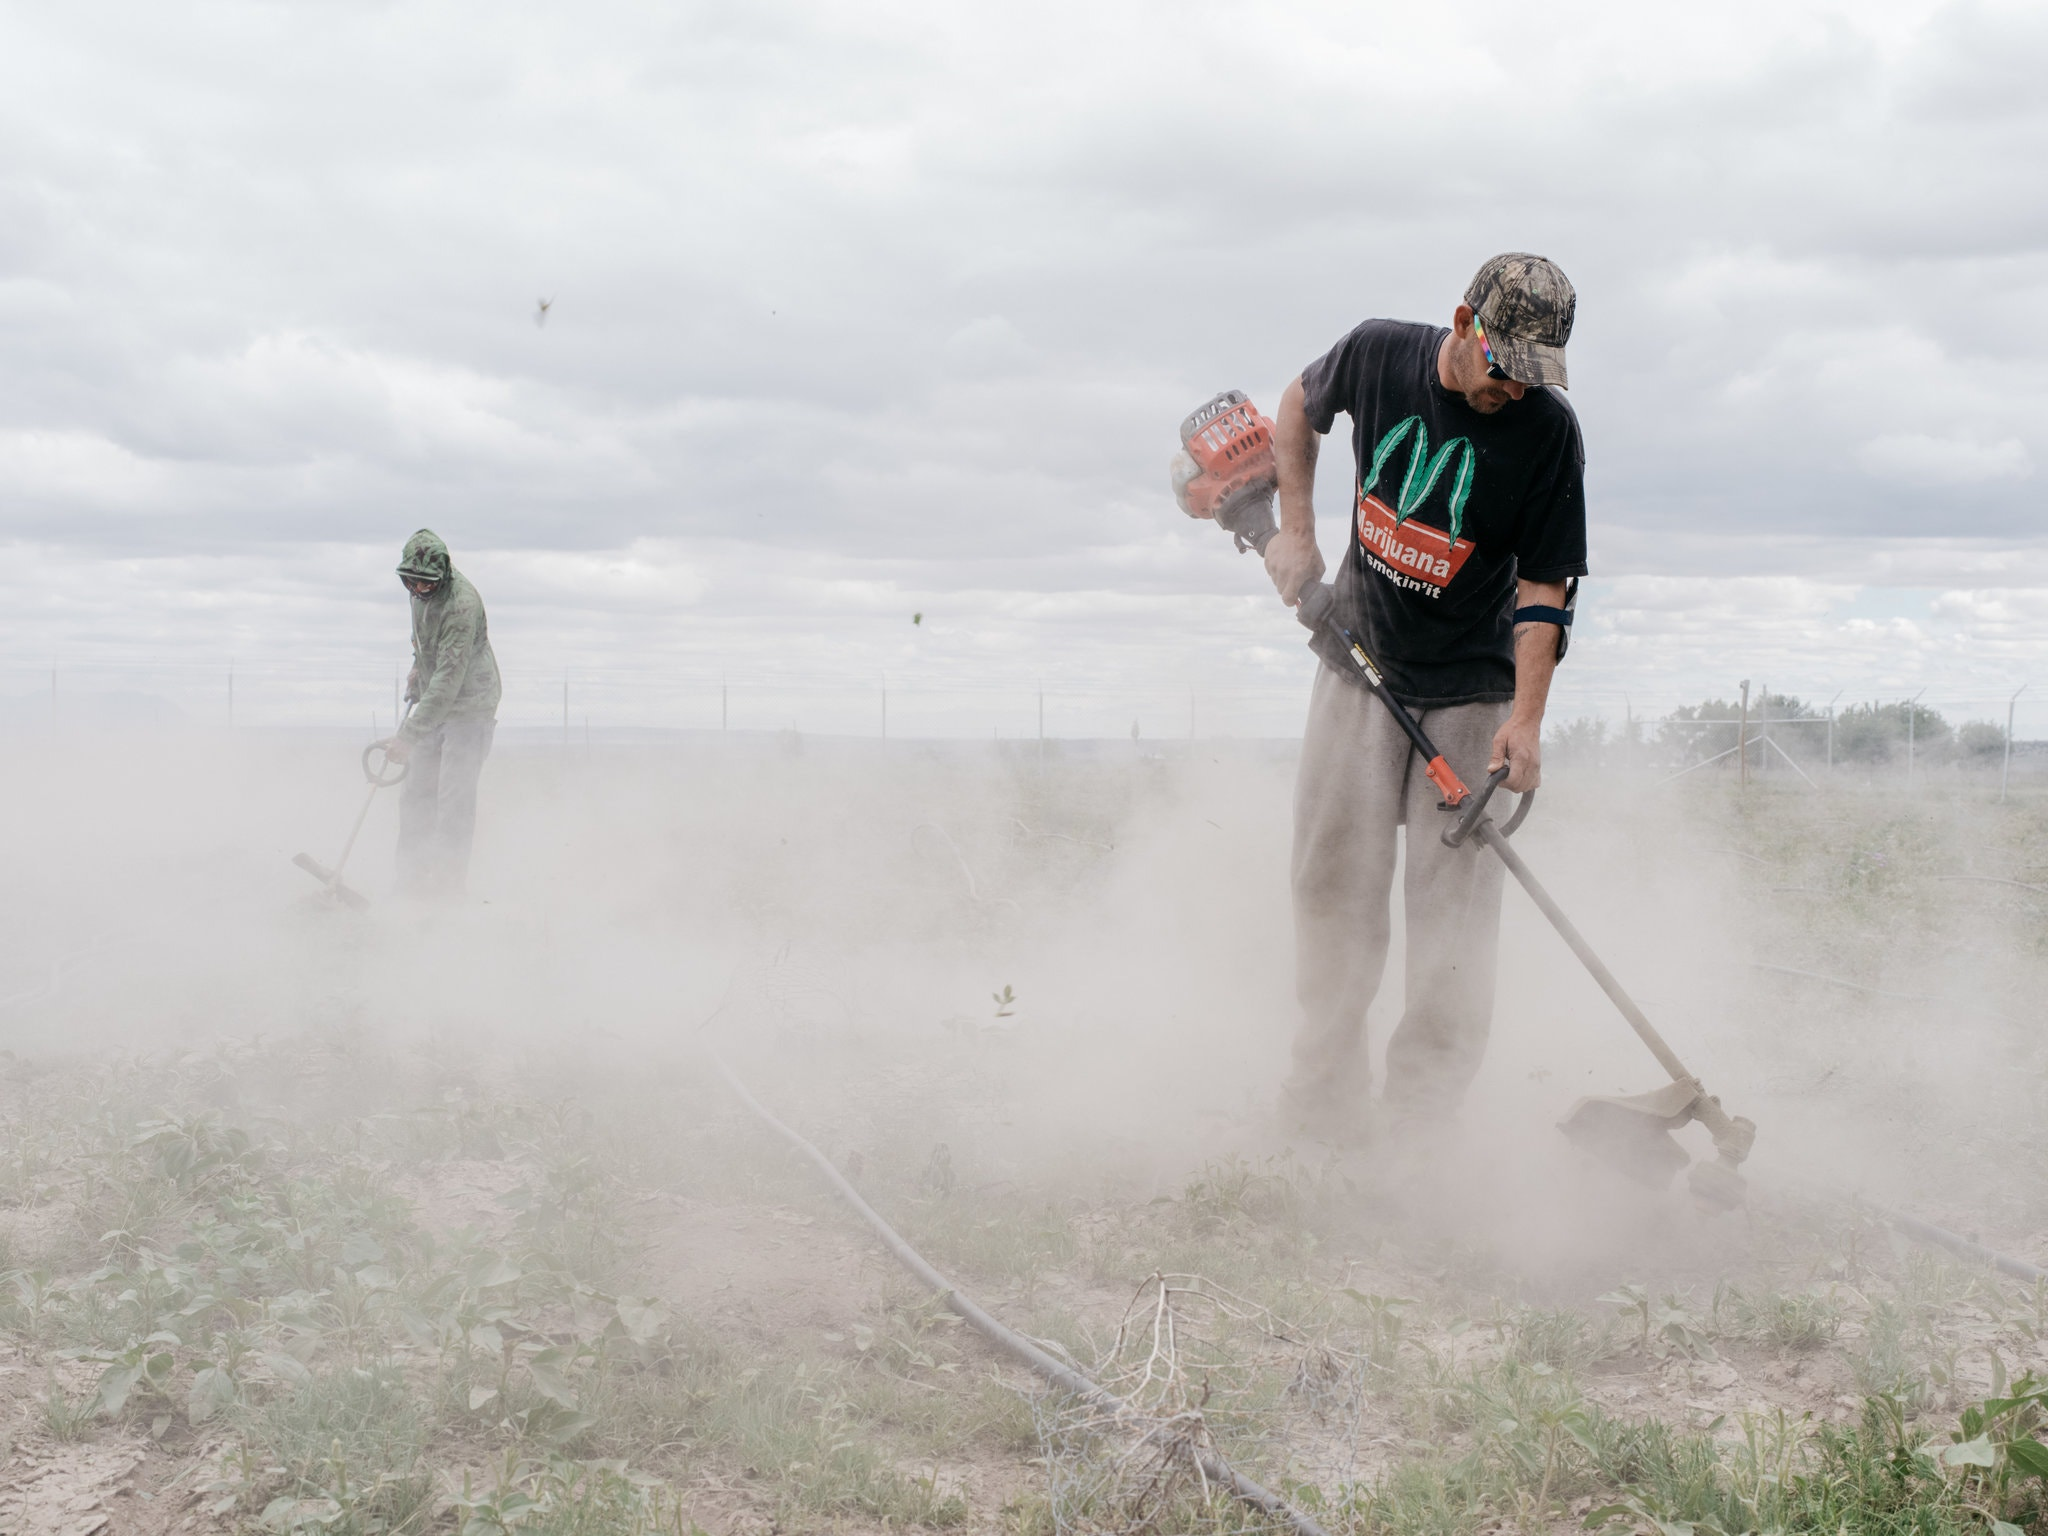 Workers prepared for marijuana planting on Woody Farms in Pueblo, Colo. The state's first-in-the-nation experiment with legalizing recreational marijuana put it on the front lines of changing America's drug laws.CreditCreditBenjamin Rasmussen for The New York Times